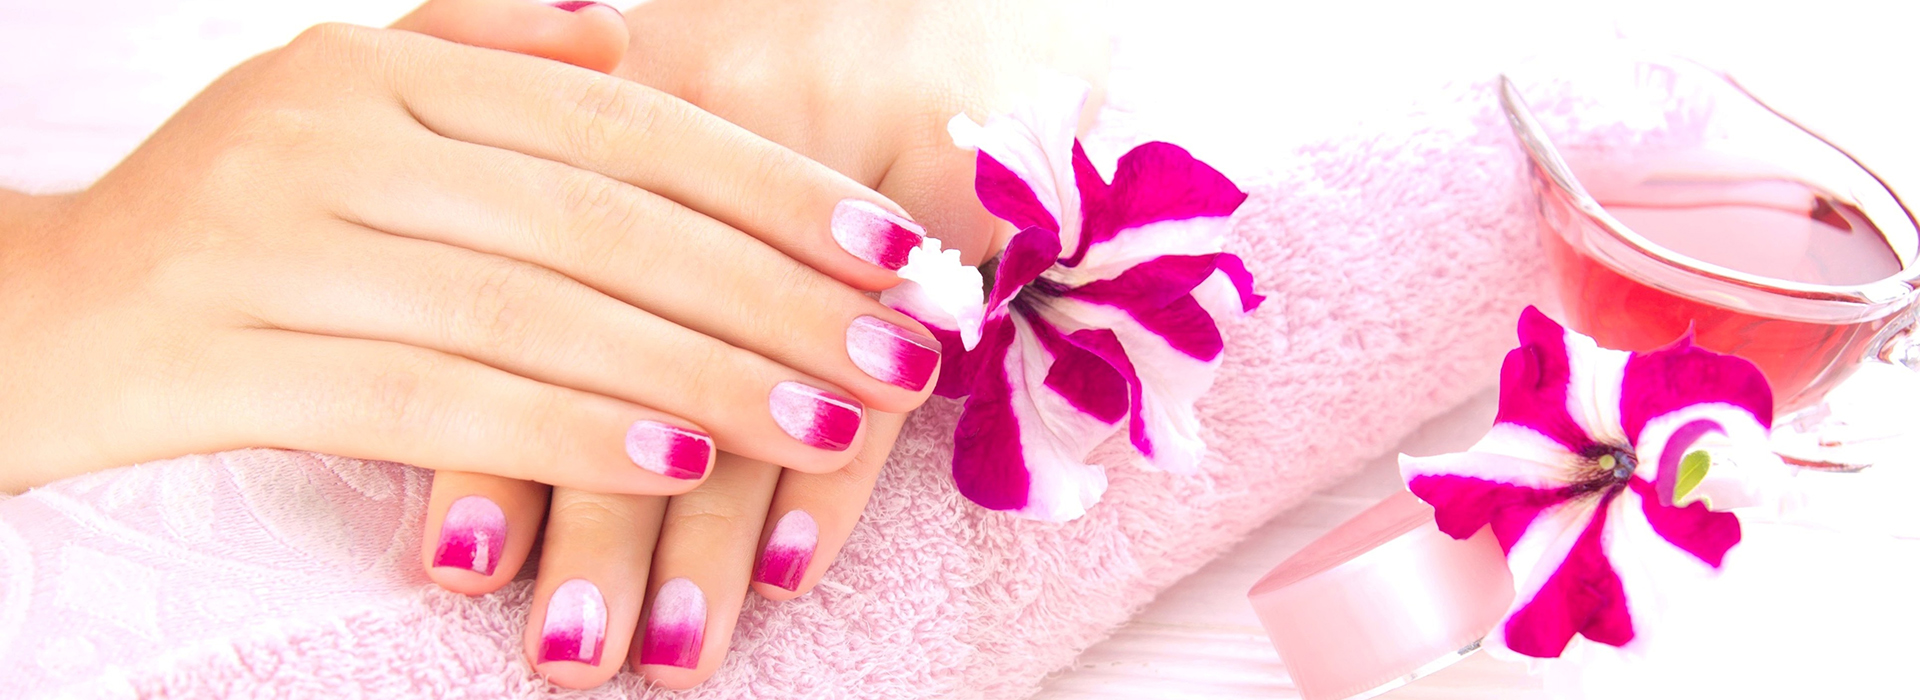 Polished Nails & Skin - Nail salon in Concord, NH 03301